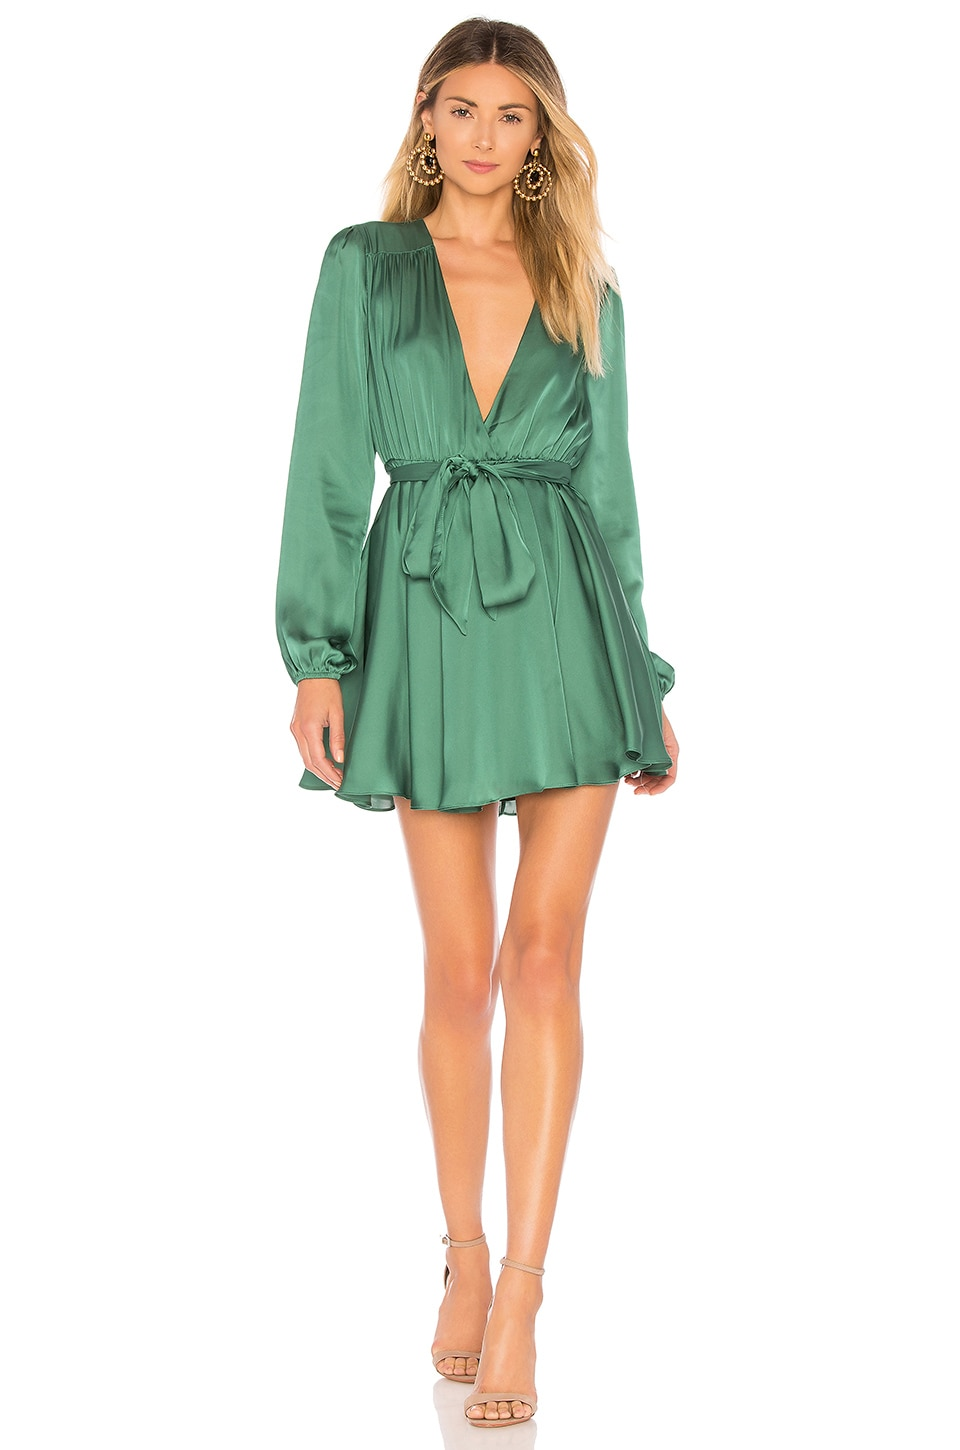 Lovers + Friends Ivy Dress in Green